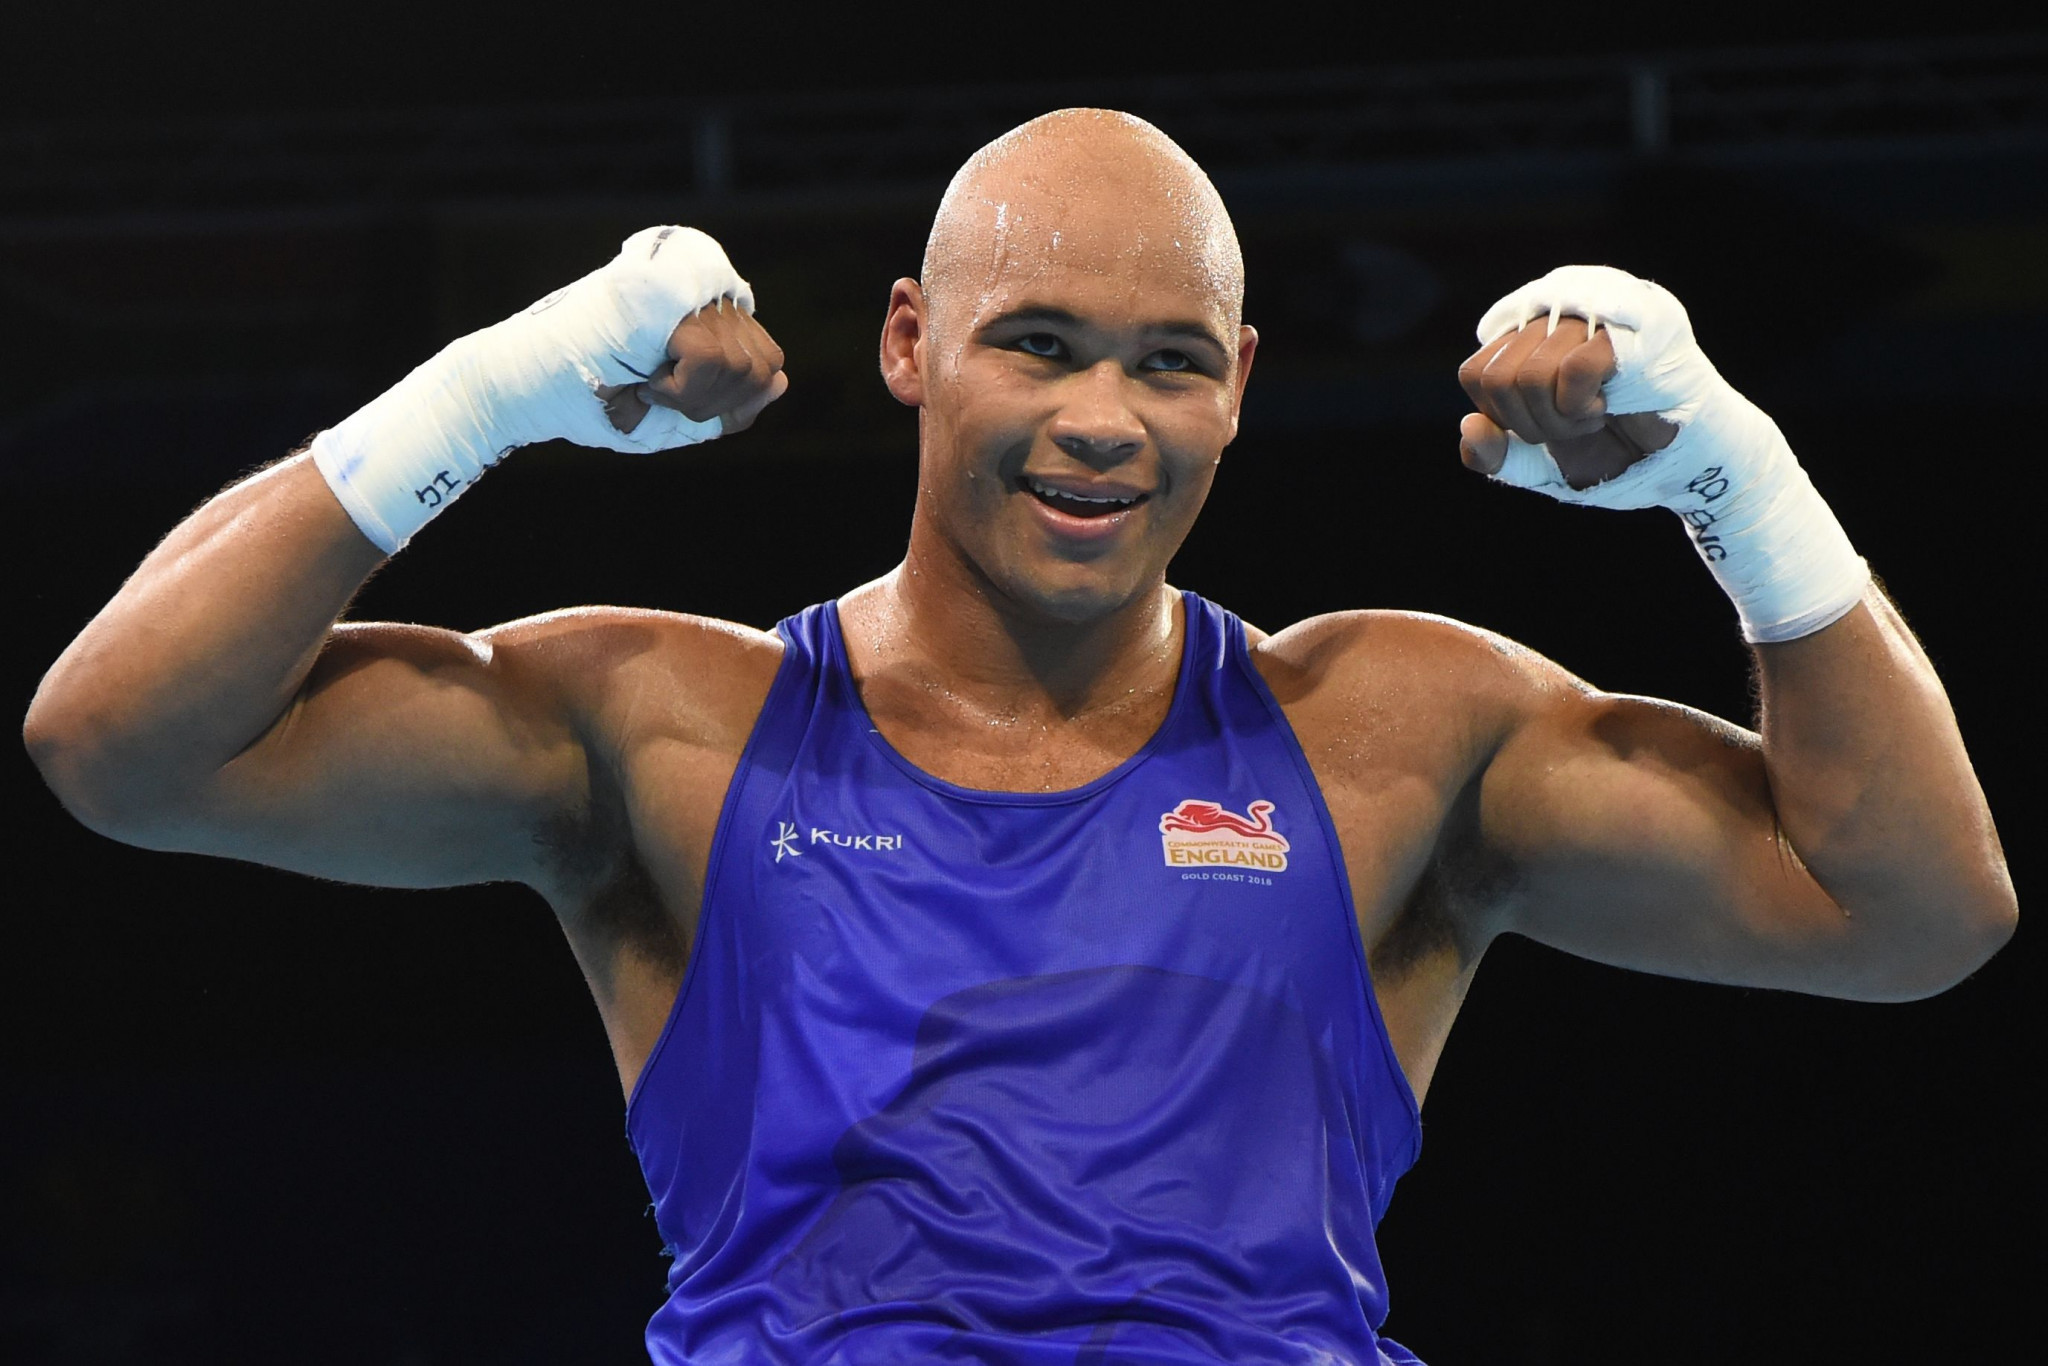 England's Commonwealth Games champion Frazer Clarke won his first bout at the AIBA World Championships ©Getty Images